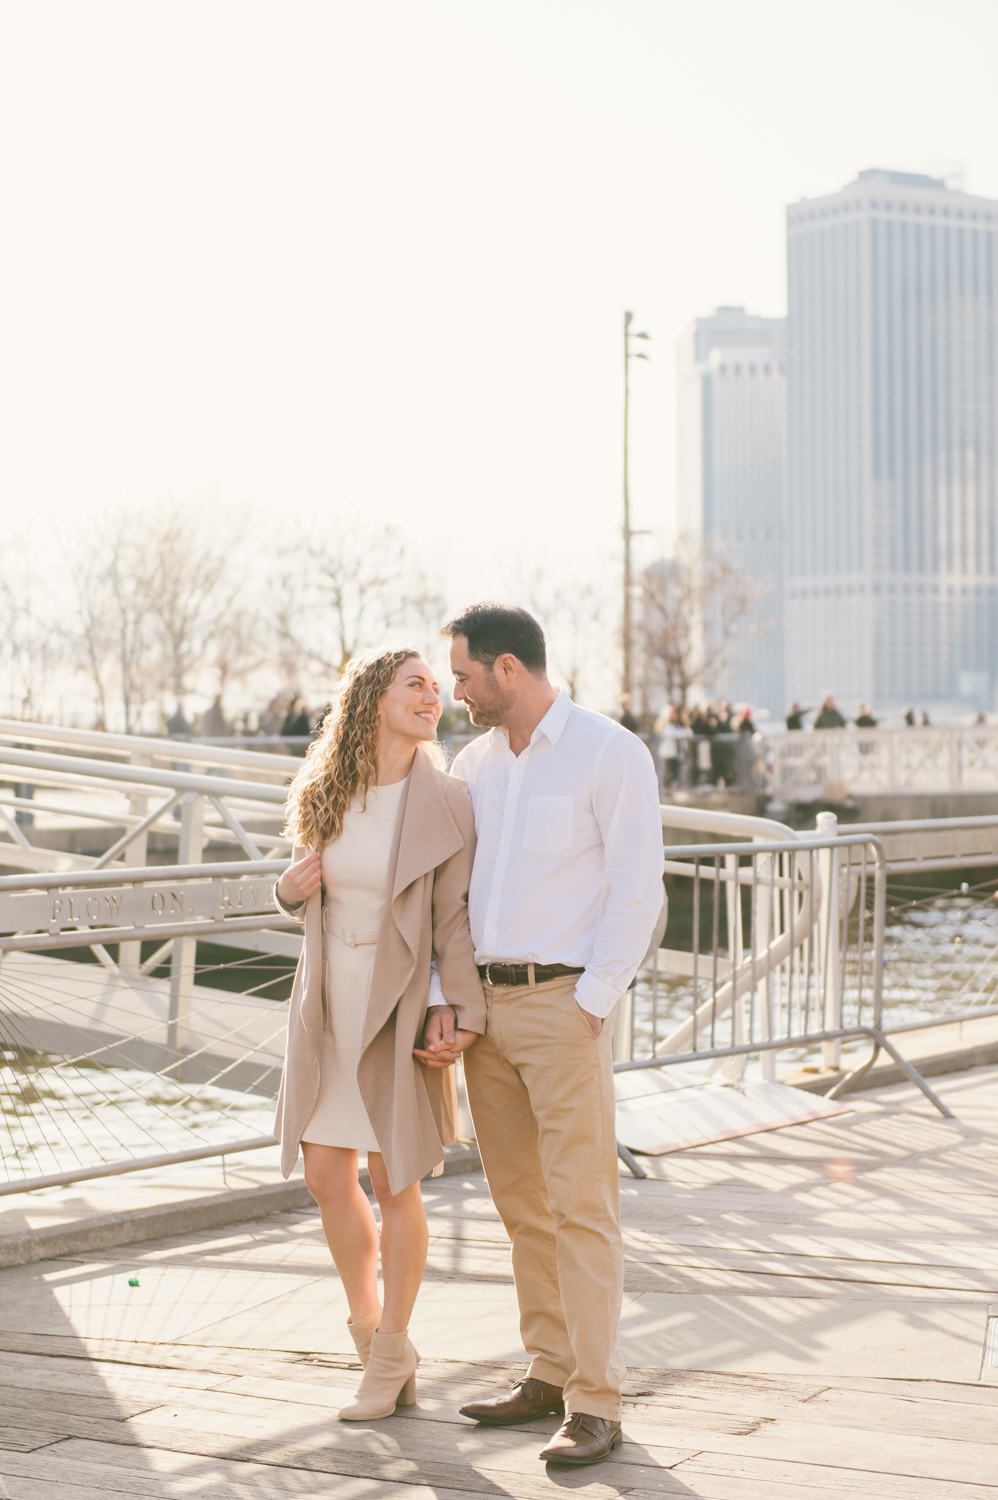 DUMBO.BrooklynBridgePark.FineArtWeddingPhotographer.KatHarris3.jpg